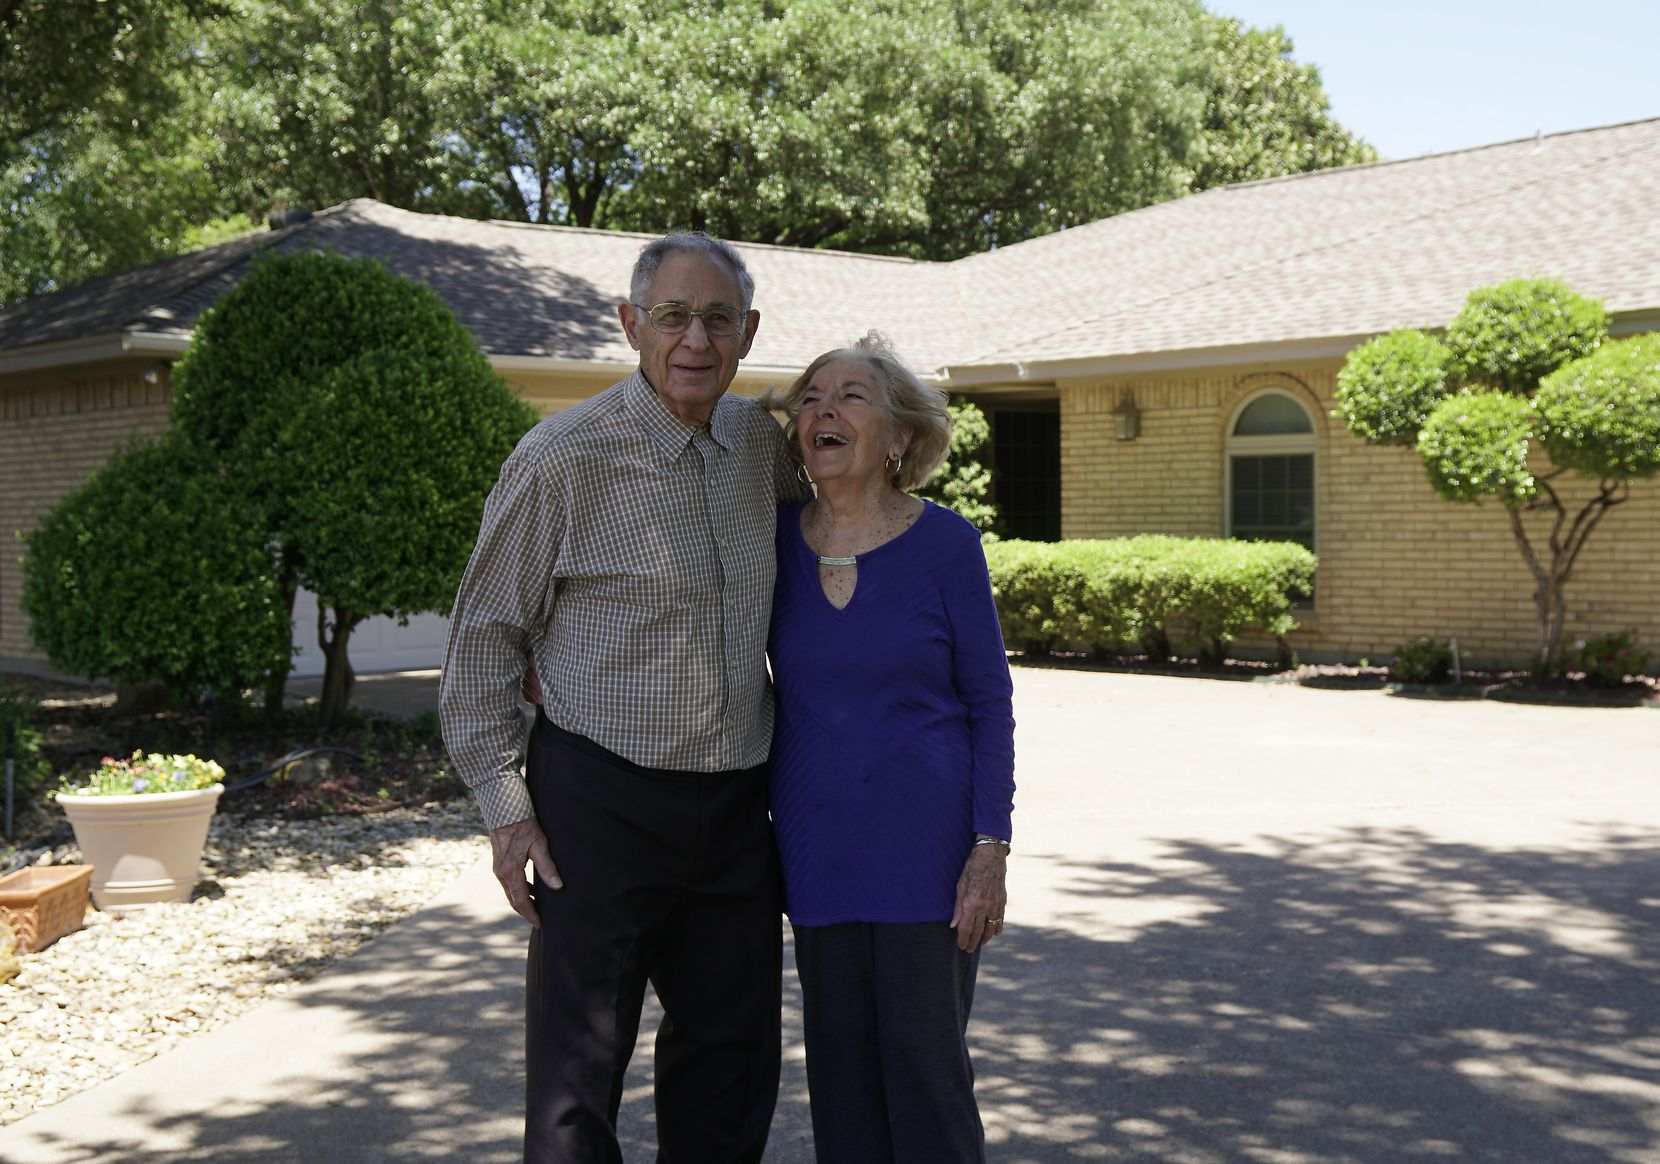 Tony and Athena Pachares settled in Fort Worth after Tony retired as a lieutenant colonel.